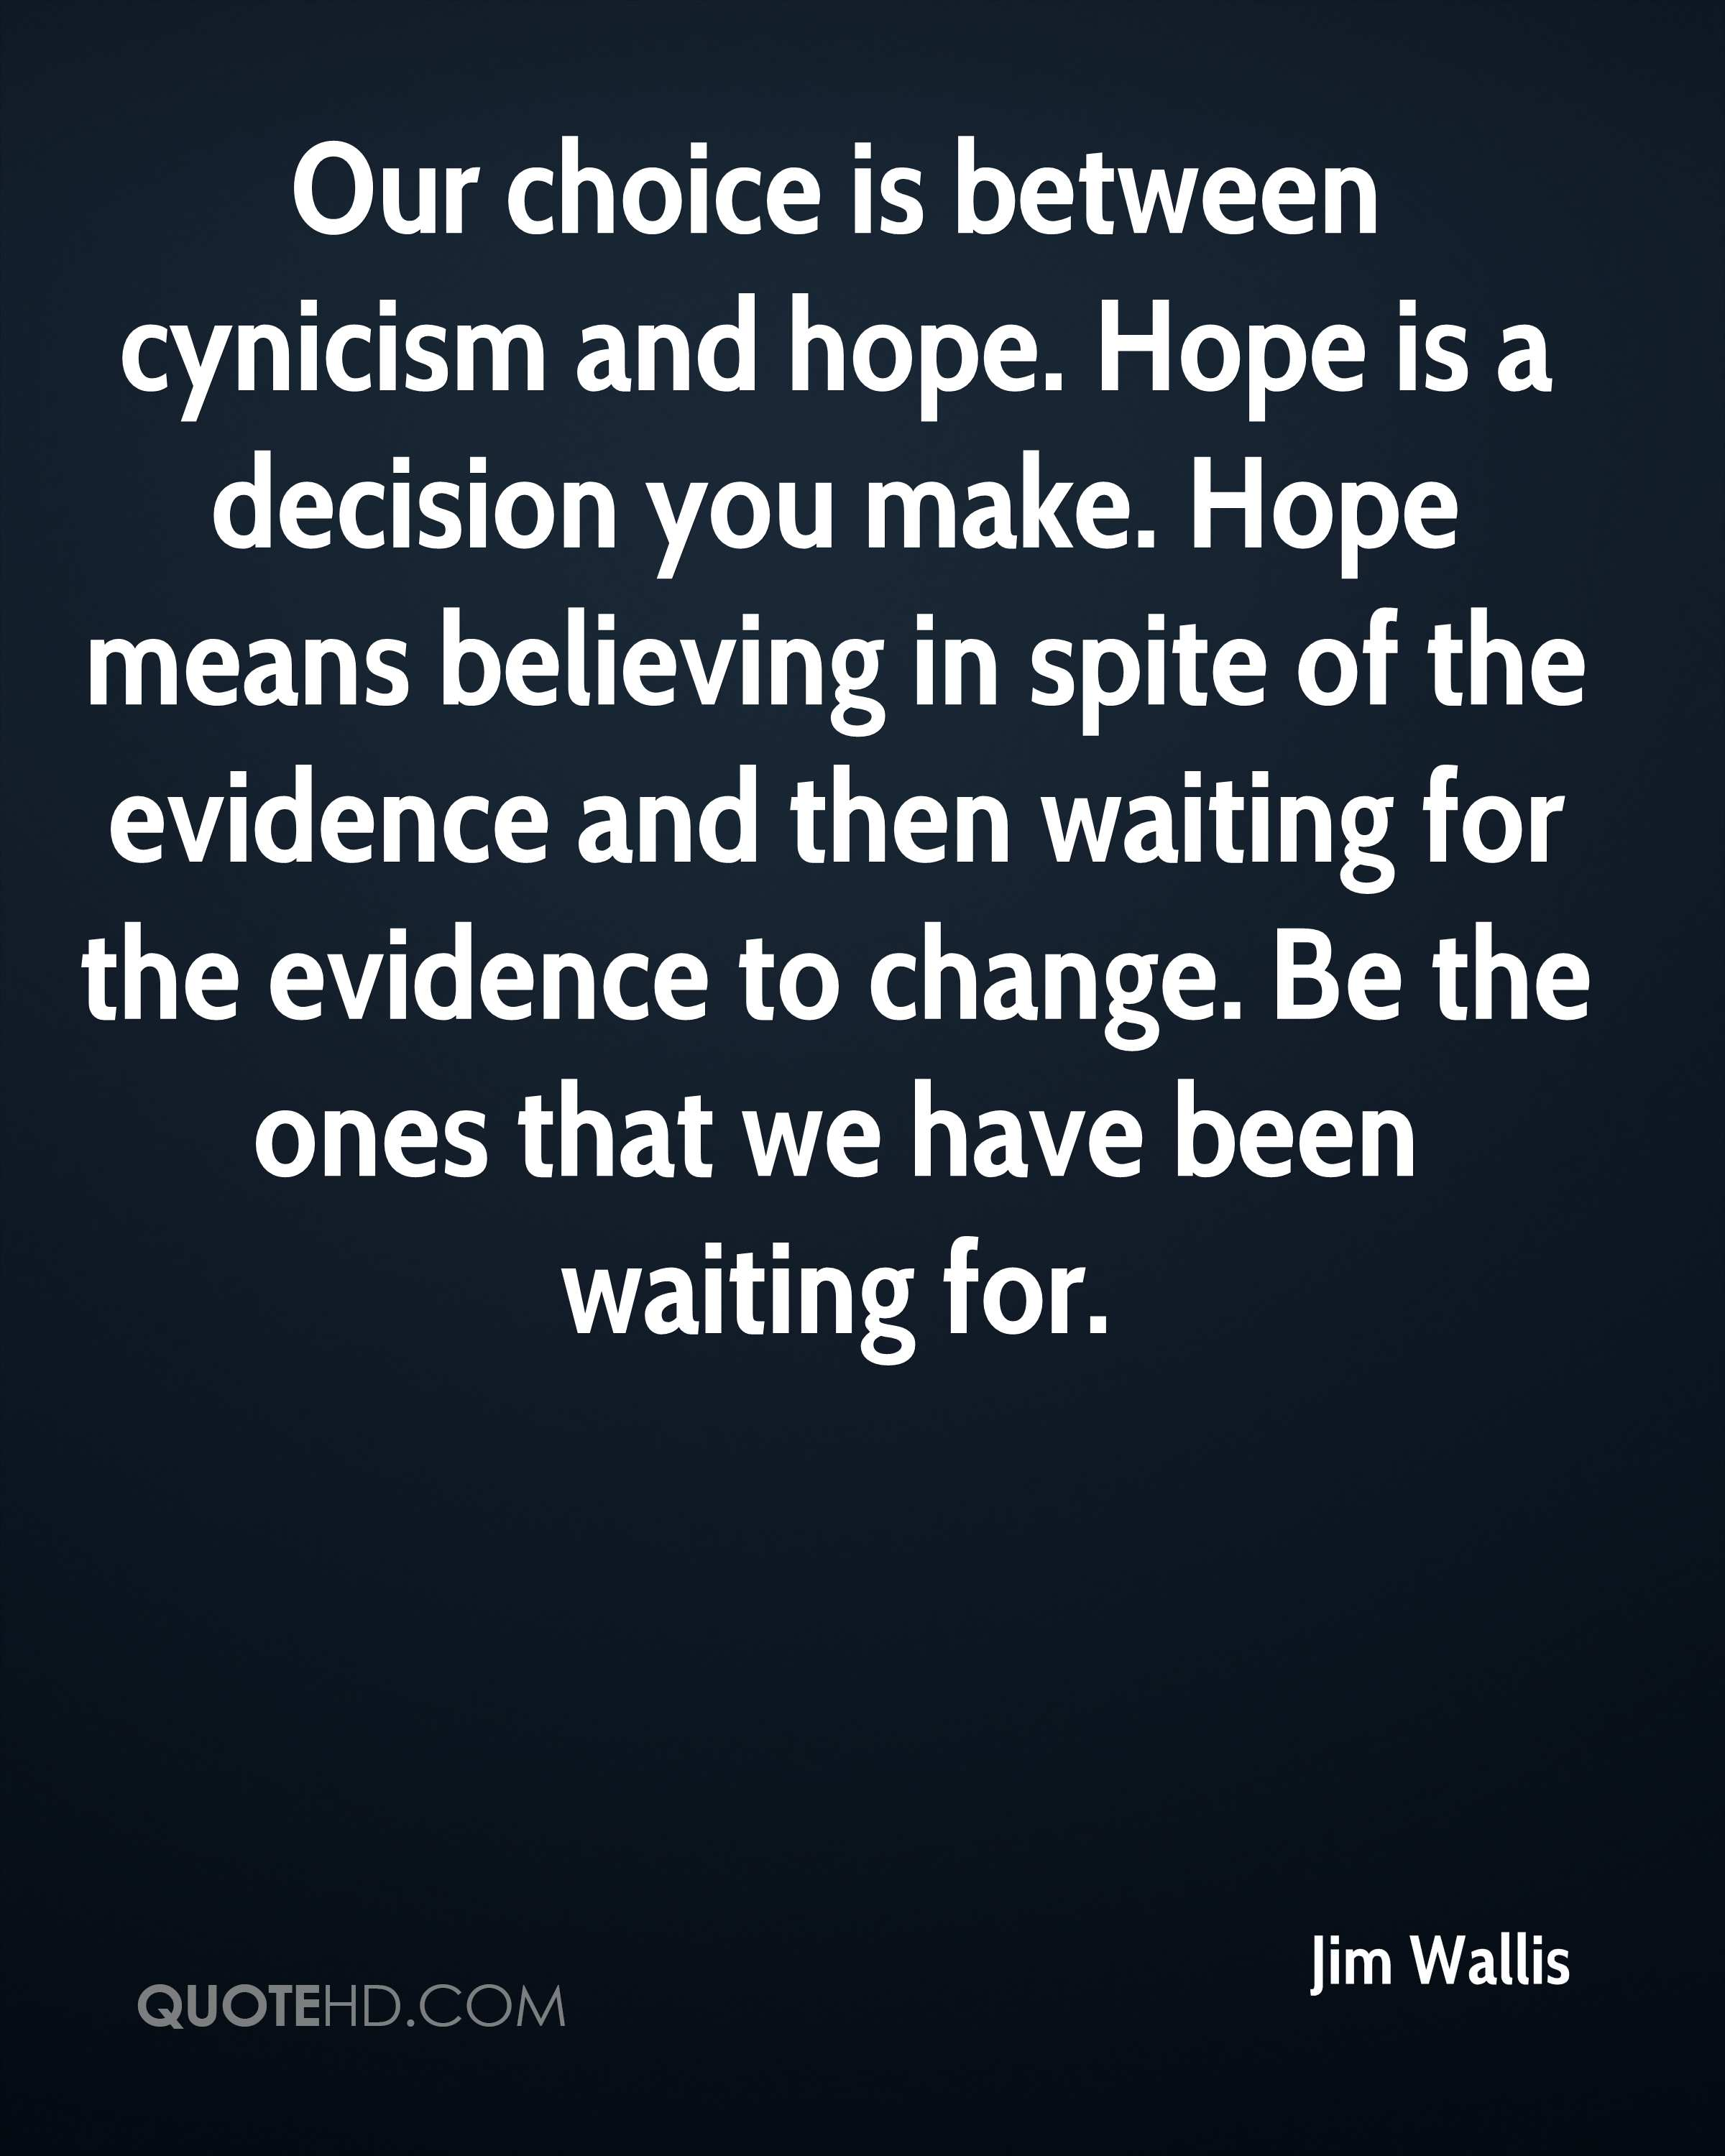 Our choice is between cynicism and hope. Hope is a decision you make. Hope means believing in spite of the evidence and then waiting for the evidence to change. Be the ones that we have been waiting for.